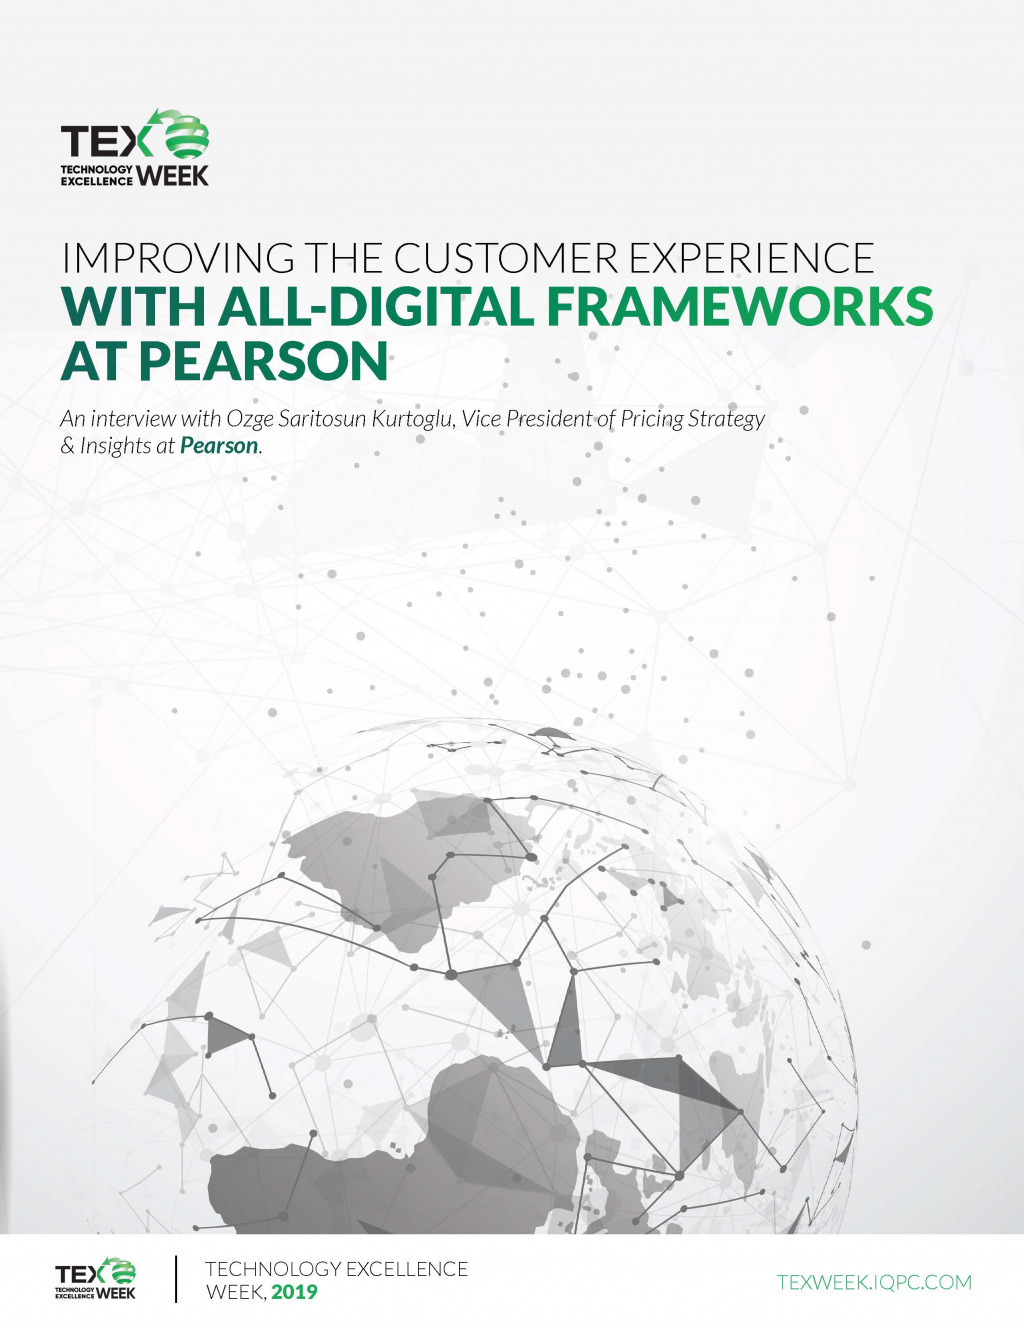 Improving the Customer Experience with All-Digital Frameworks at Pearson